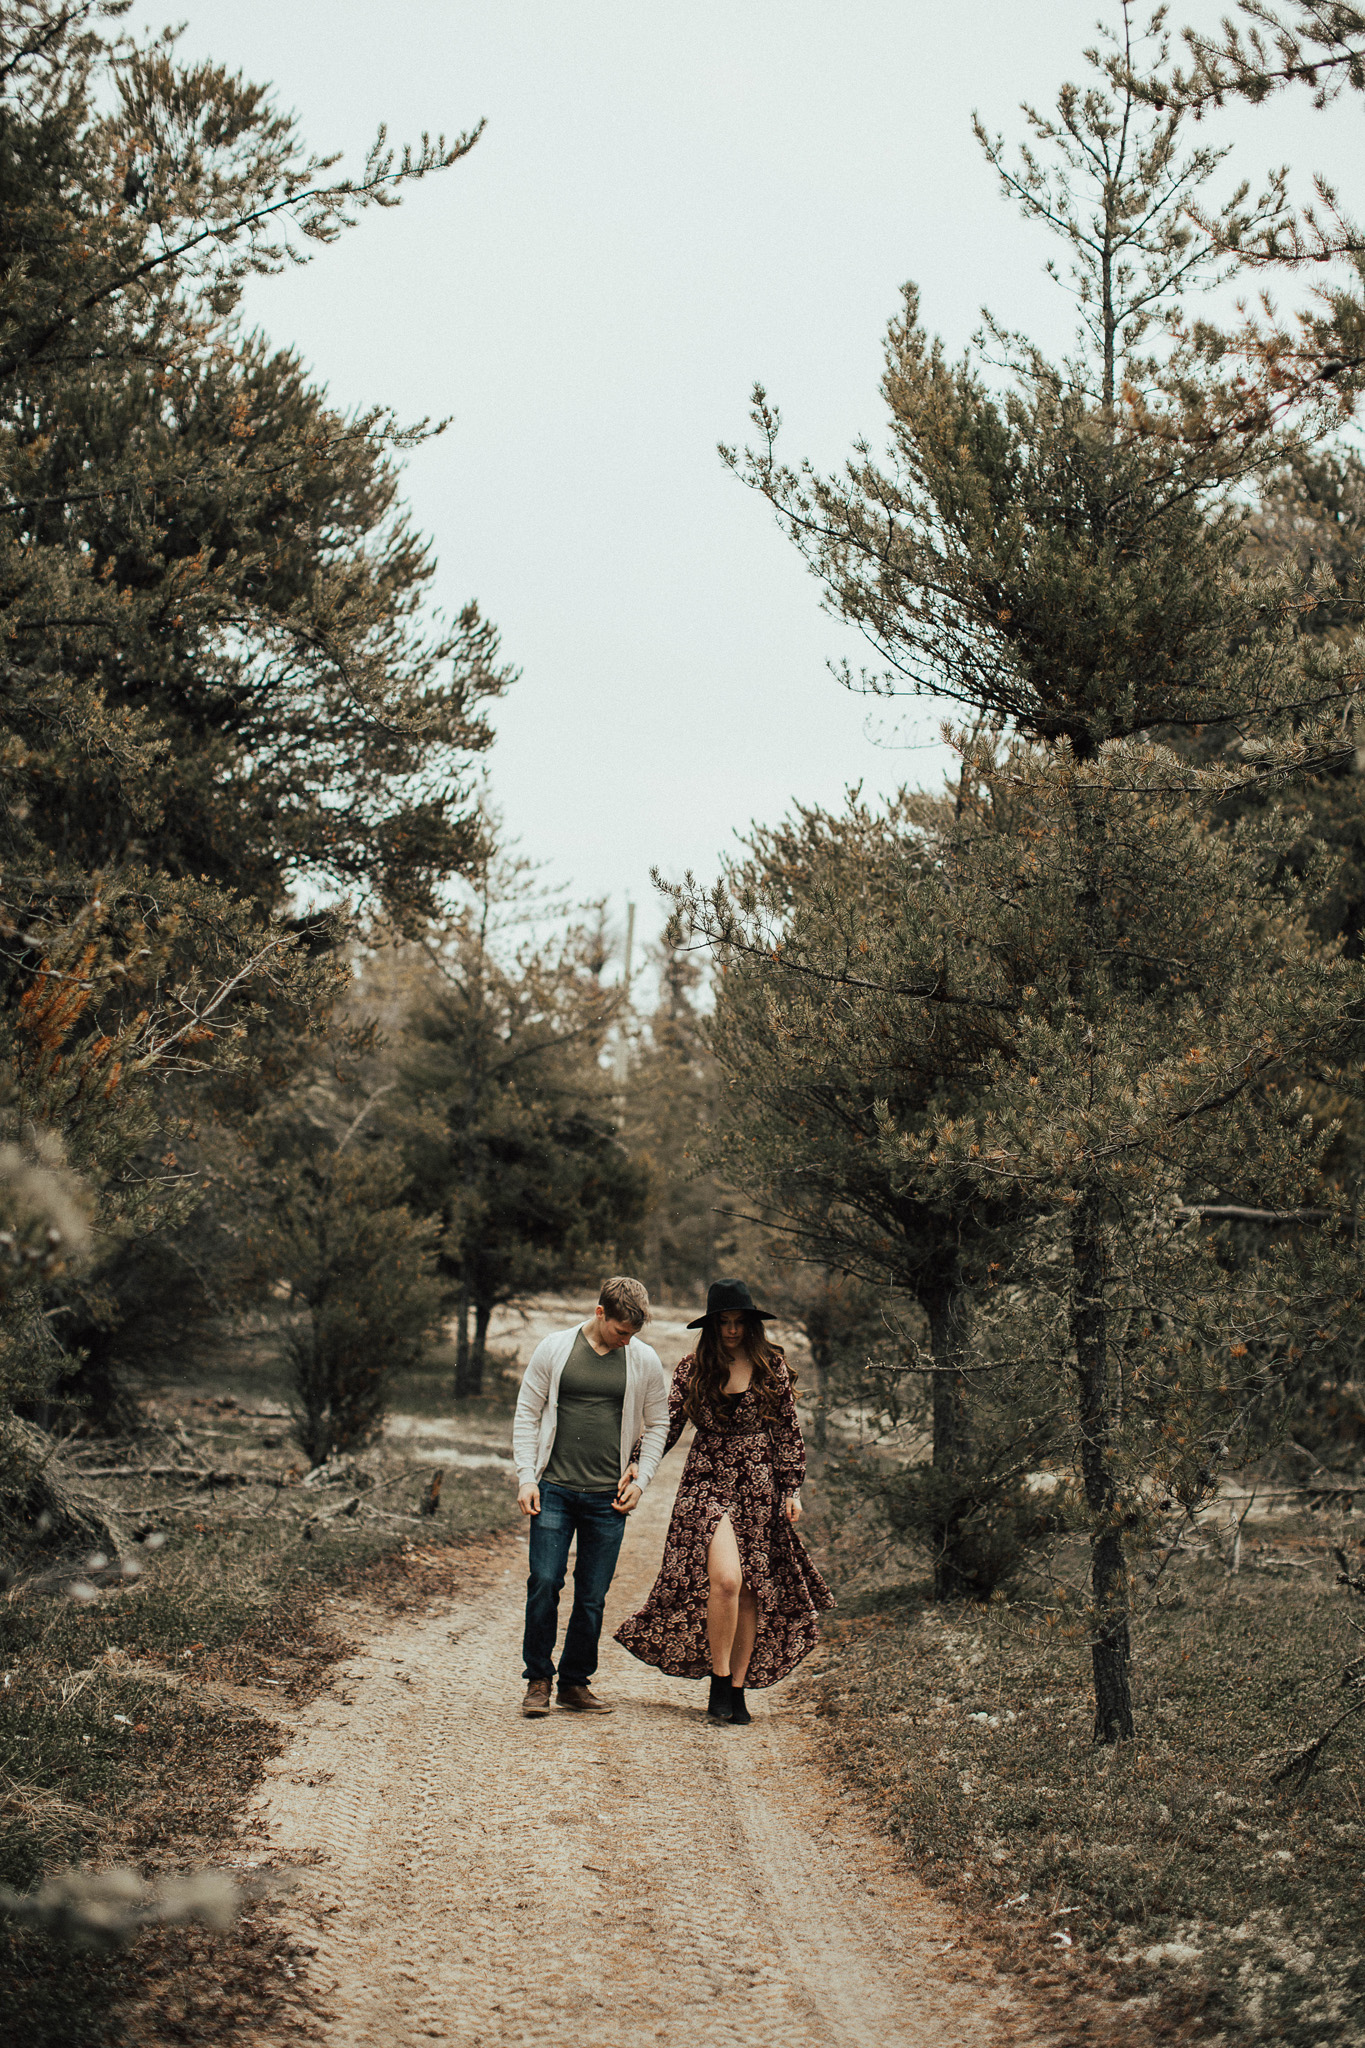 Edmonton Engagement Photographer - Michelle Larmand Photography - Mossy woods engagement session030